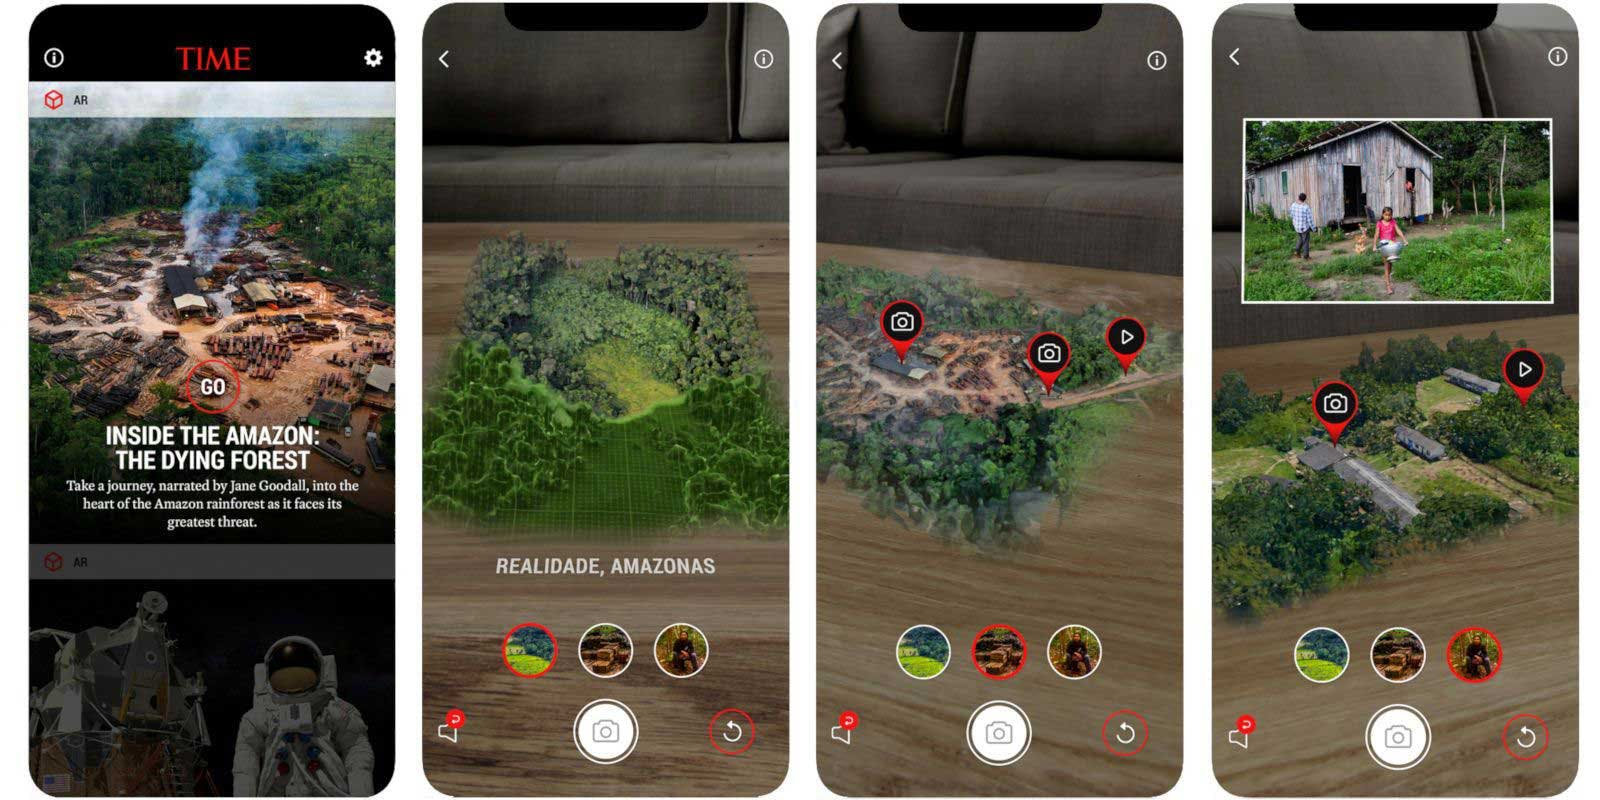 Here is a AR version of Spatial Journalism via mobile device. This is interactive on journalism where the user decides what they want to see.